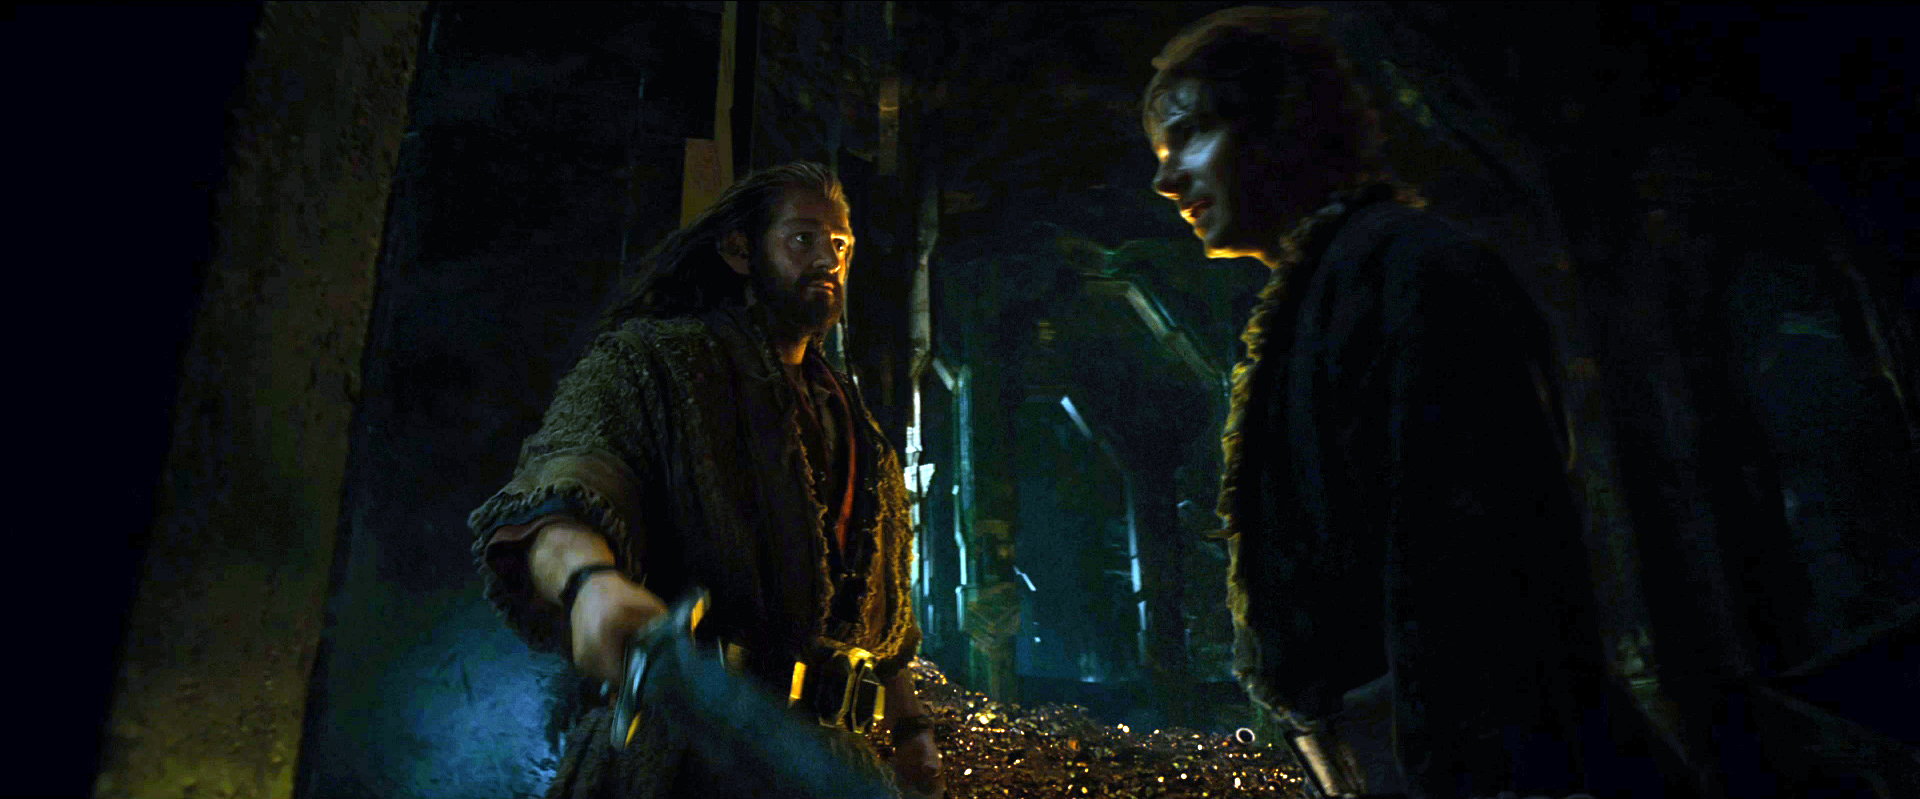 Is The Erebor Sickness From The Ring